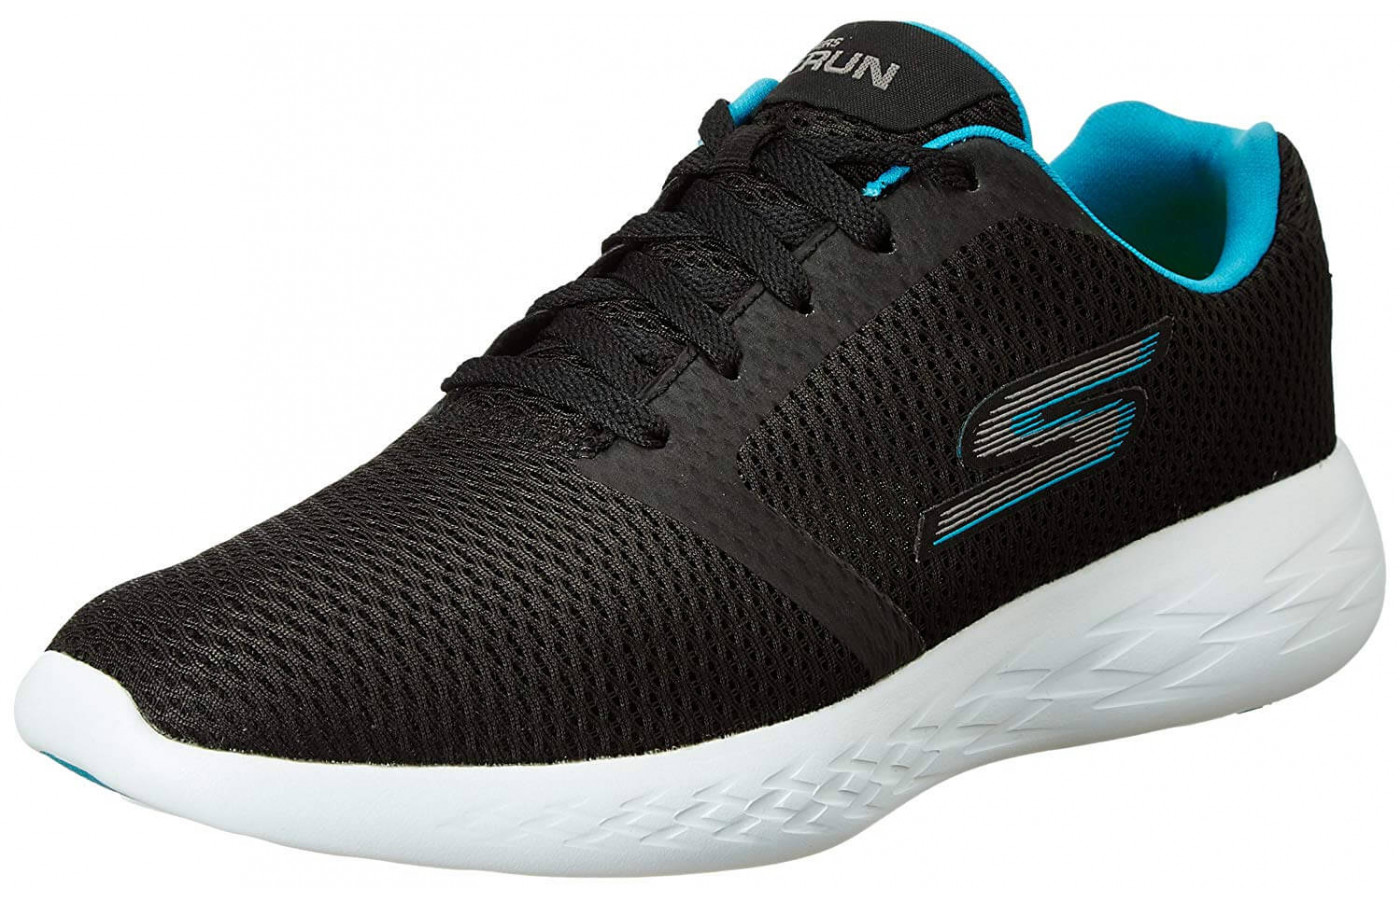 Sketchers GOrun 600 Refine featured image side angle view